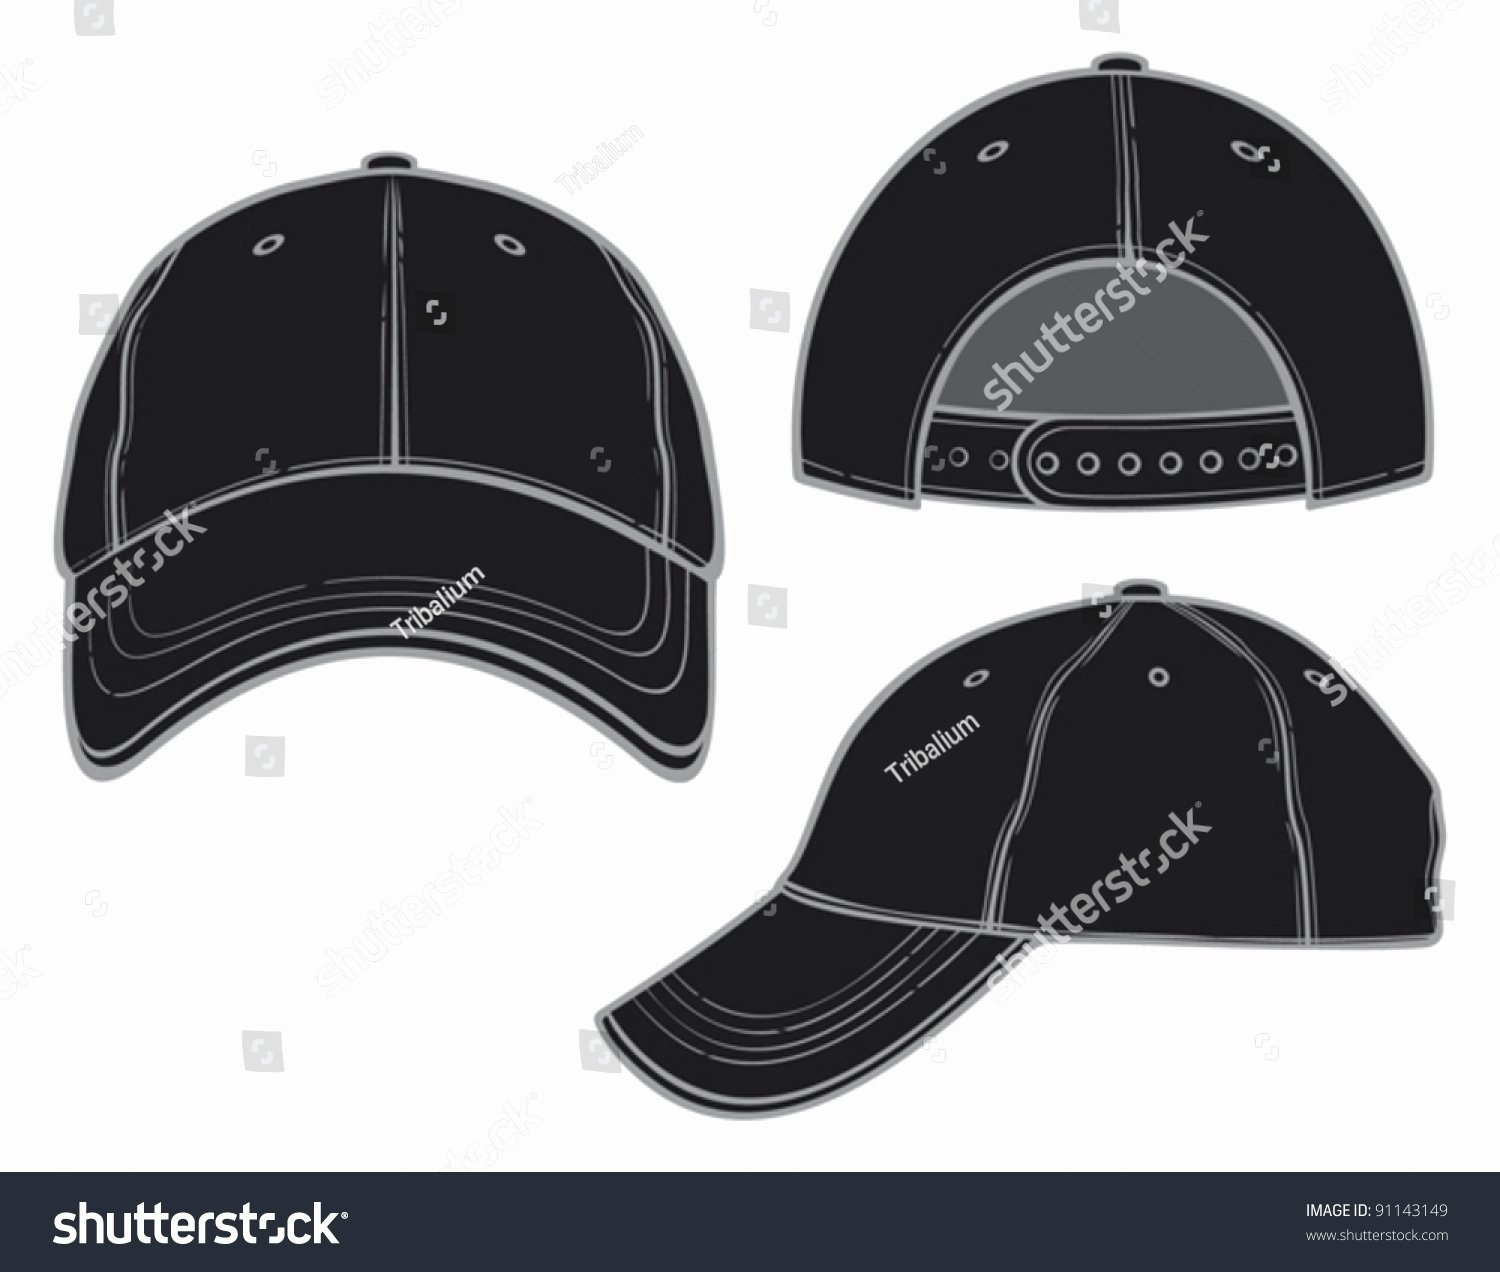 Baseball Hat Vector Luxury Black Baseball Cap Stock Vector Shutterstock